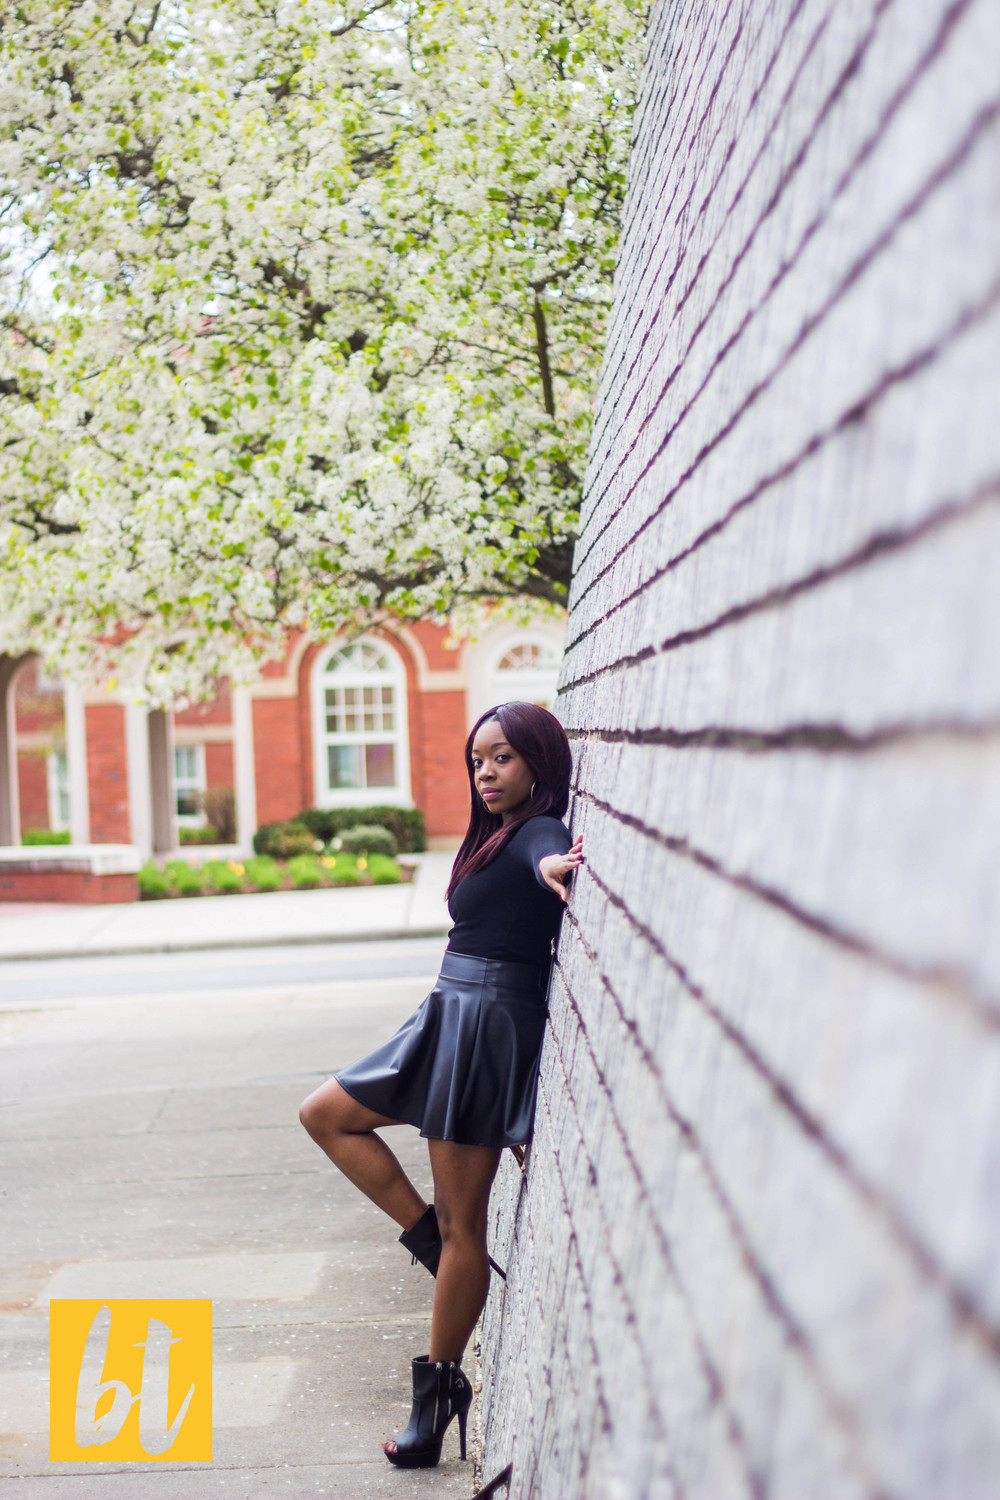 bryant-tyson-photography-diedna-jones-senior-portraits-greenville-nc-photographer-7.jpg